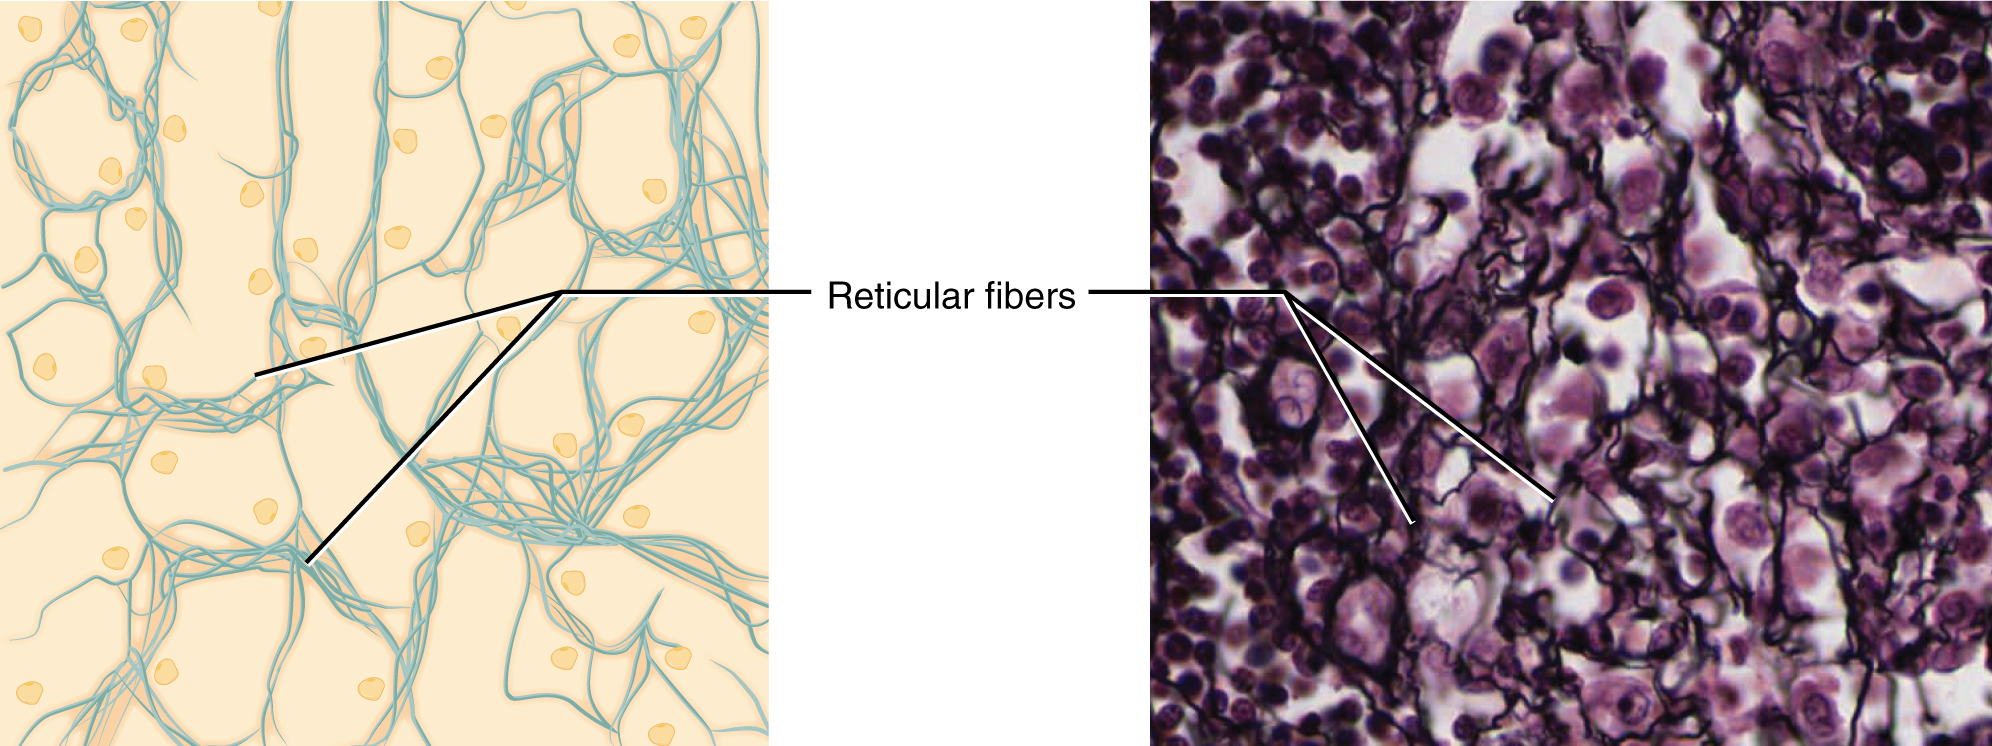 This figure shows reticular tissue alongside a micrograph. The diagram shows a series of small, oval cells embedded in a yellowish matrix. Thin reticular fibers spread and crisscross throughout the matrix. In the micrograph, the reticular fibers are thin, dark, and seem to travel between the many deeply stained cells.